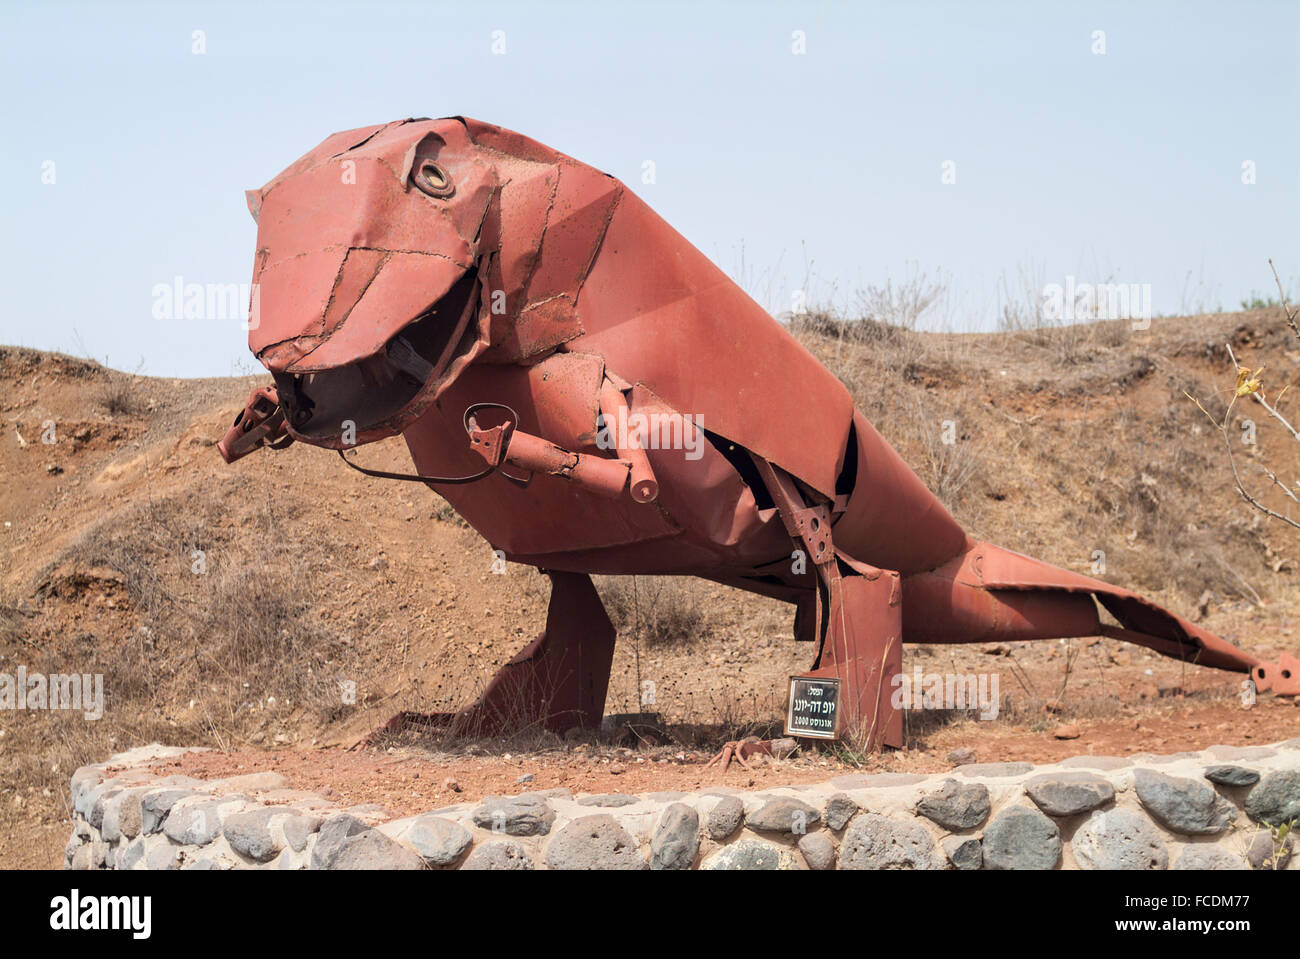 Dinosaurs statue from metal parts, military scrap military memorial, Mount Bental, Golan Heights, Israel - Stock Image